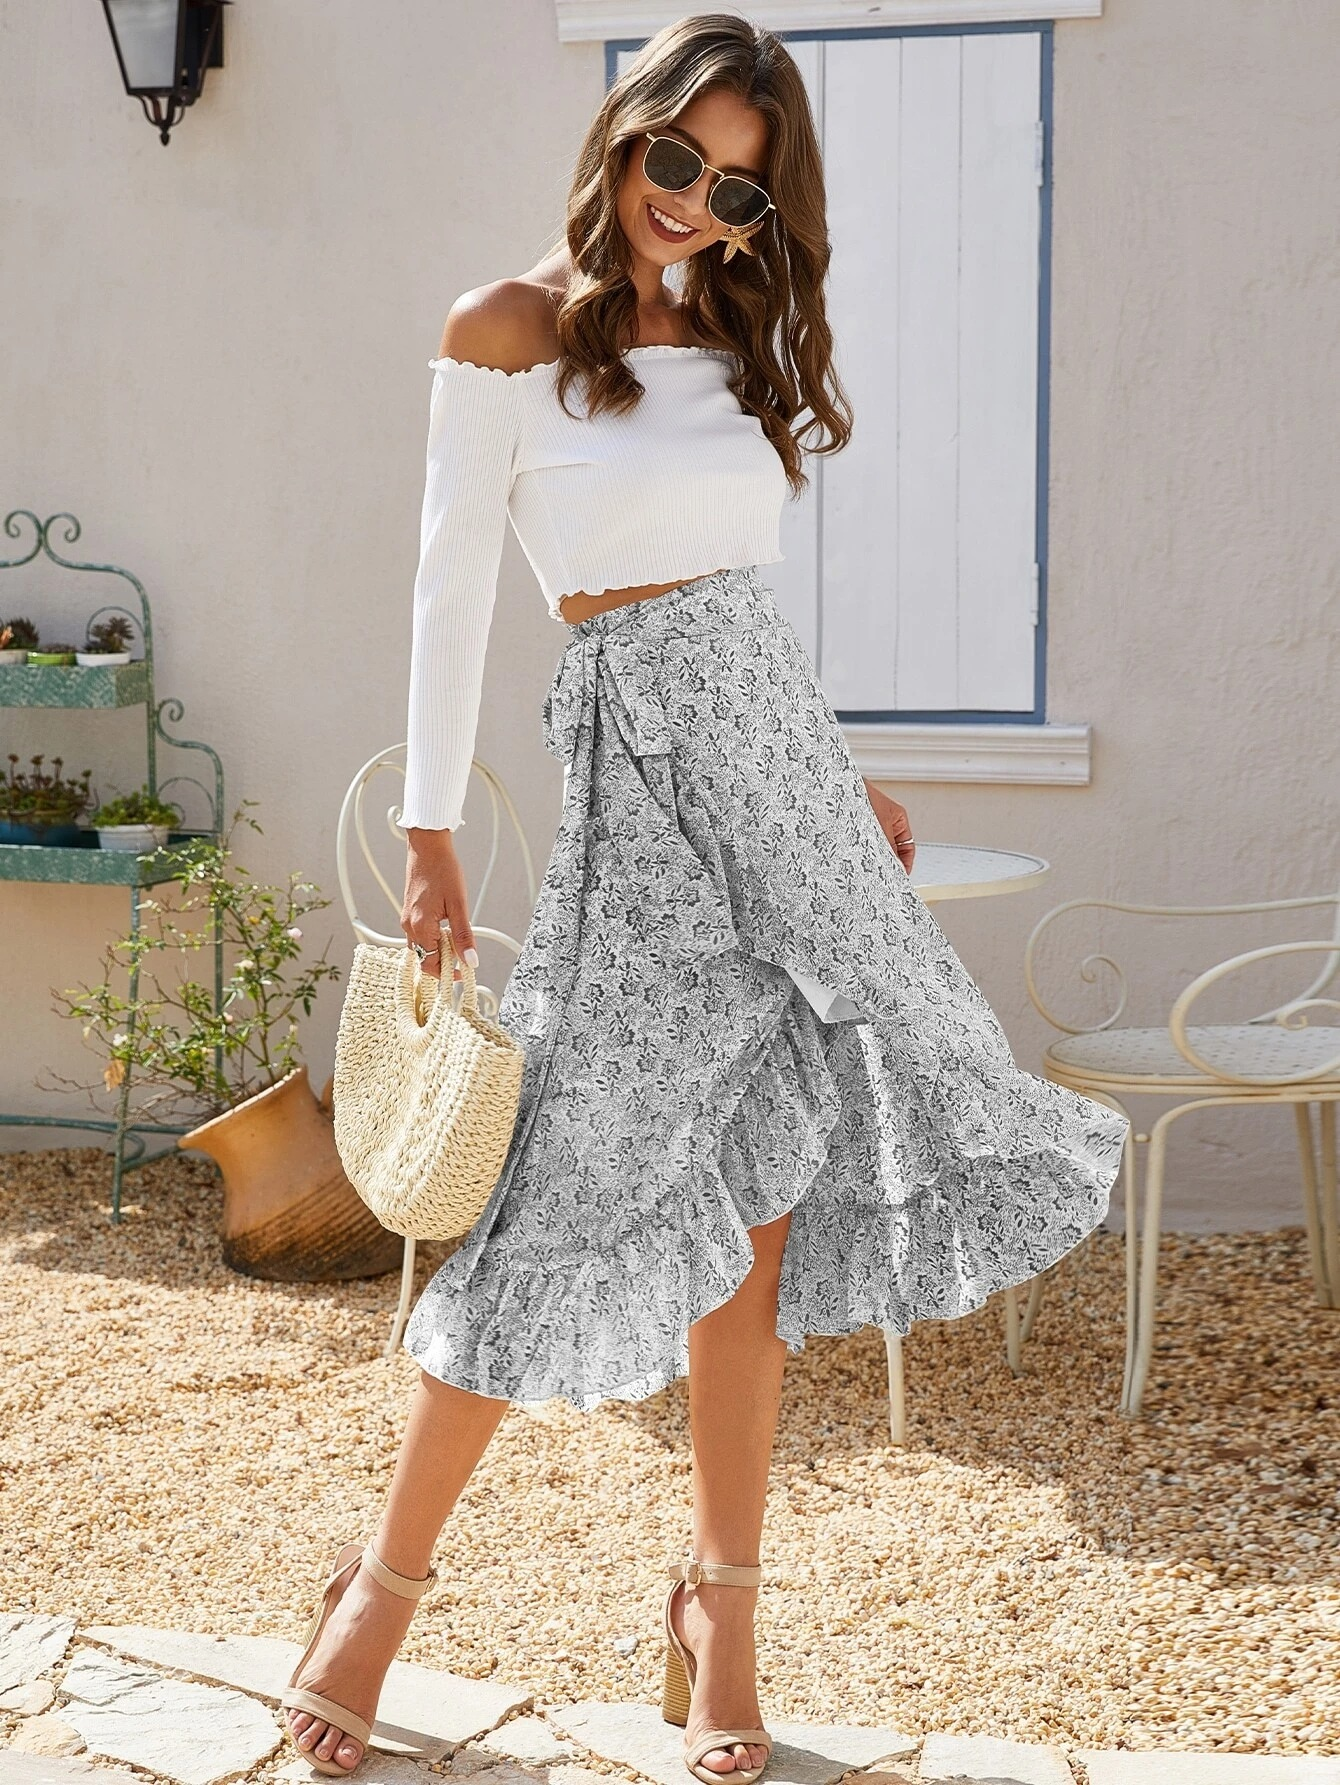 Blue flowing midi skirt with white crop top